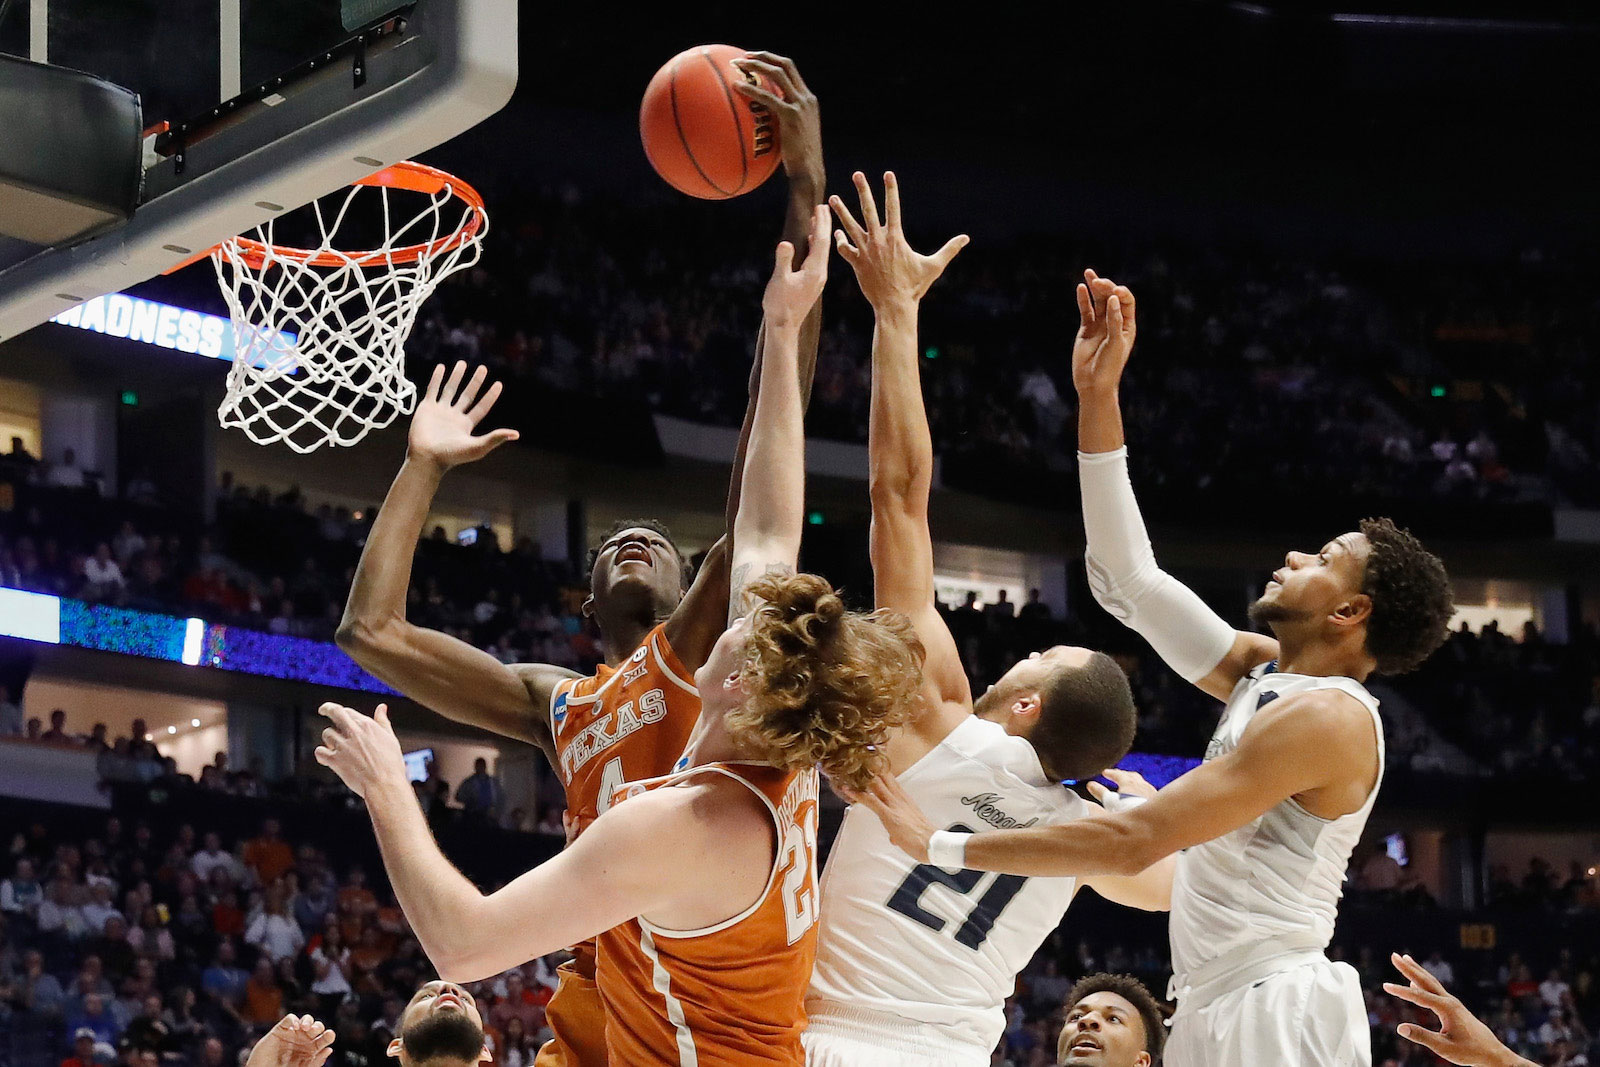 Mohamed Bamba #4 of the Texas Longhorns grabs a rebound over Kendall Stephens #21 of the Nevada Wolf Pack during the game in the first round of the 2018 NCAA Men's Basketball Tournament at Bridgestone Arena on March 16, 2018 in Nashville, Tennessee.